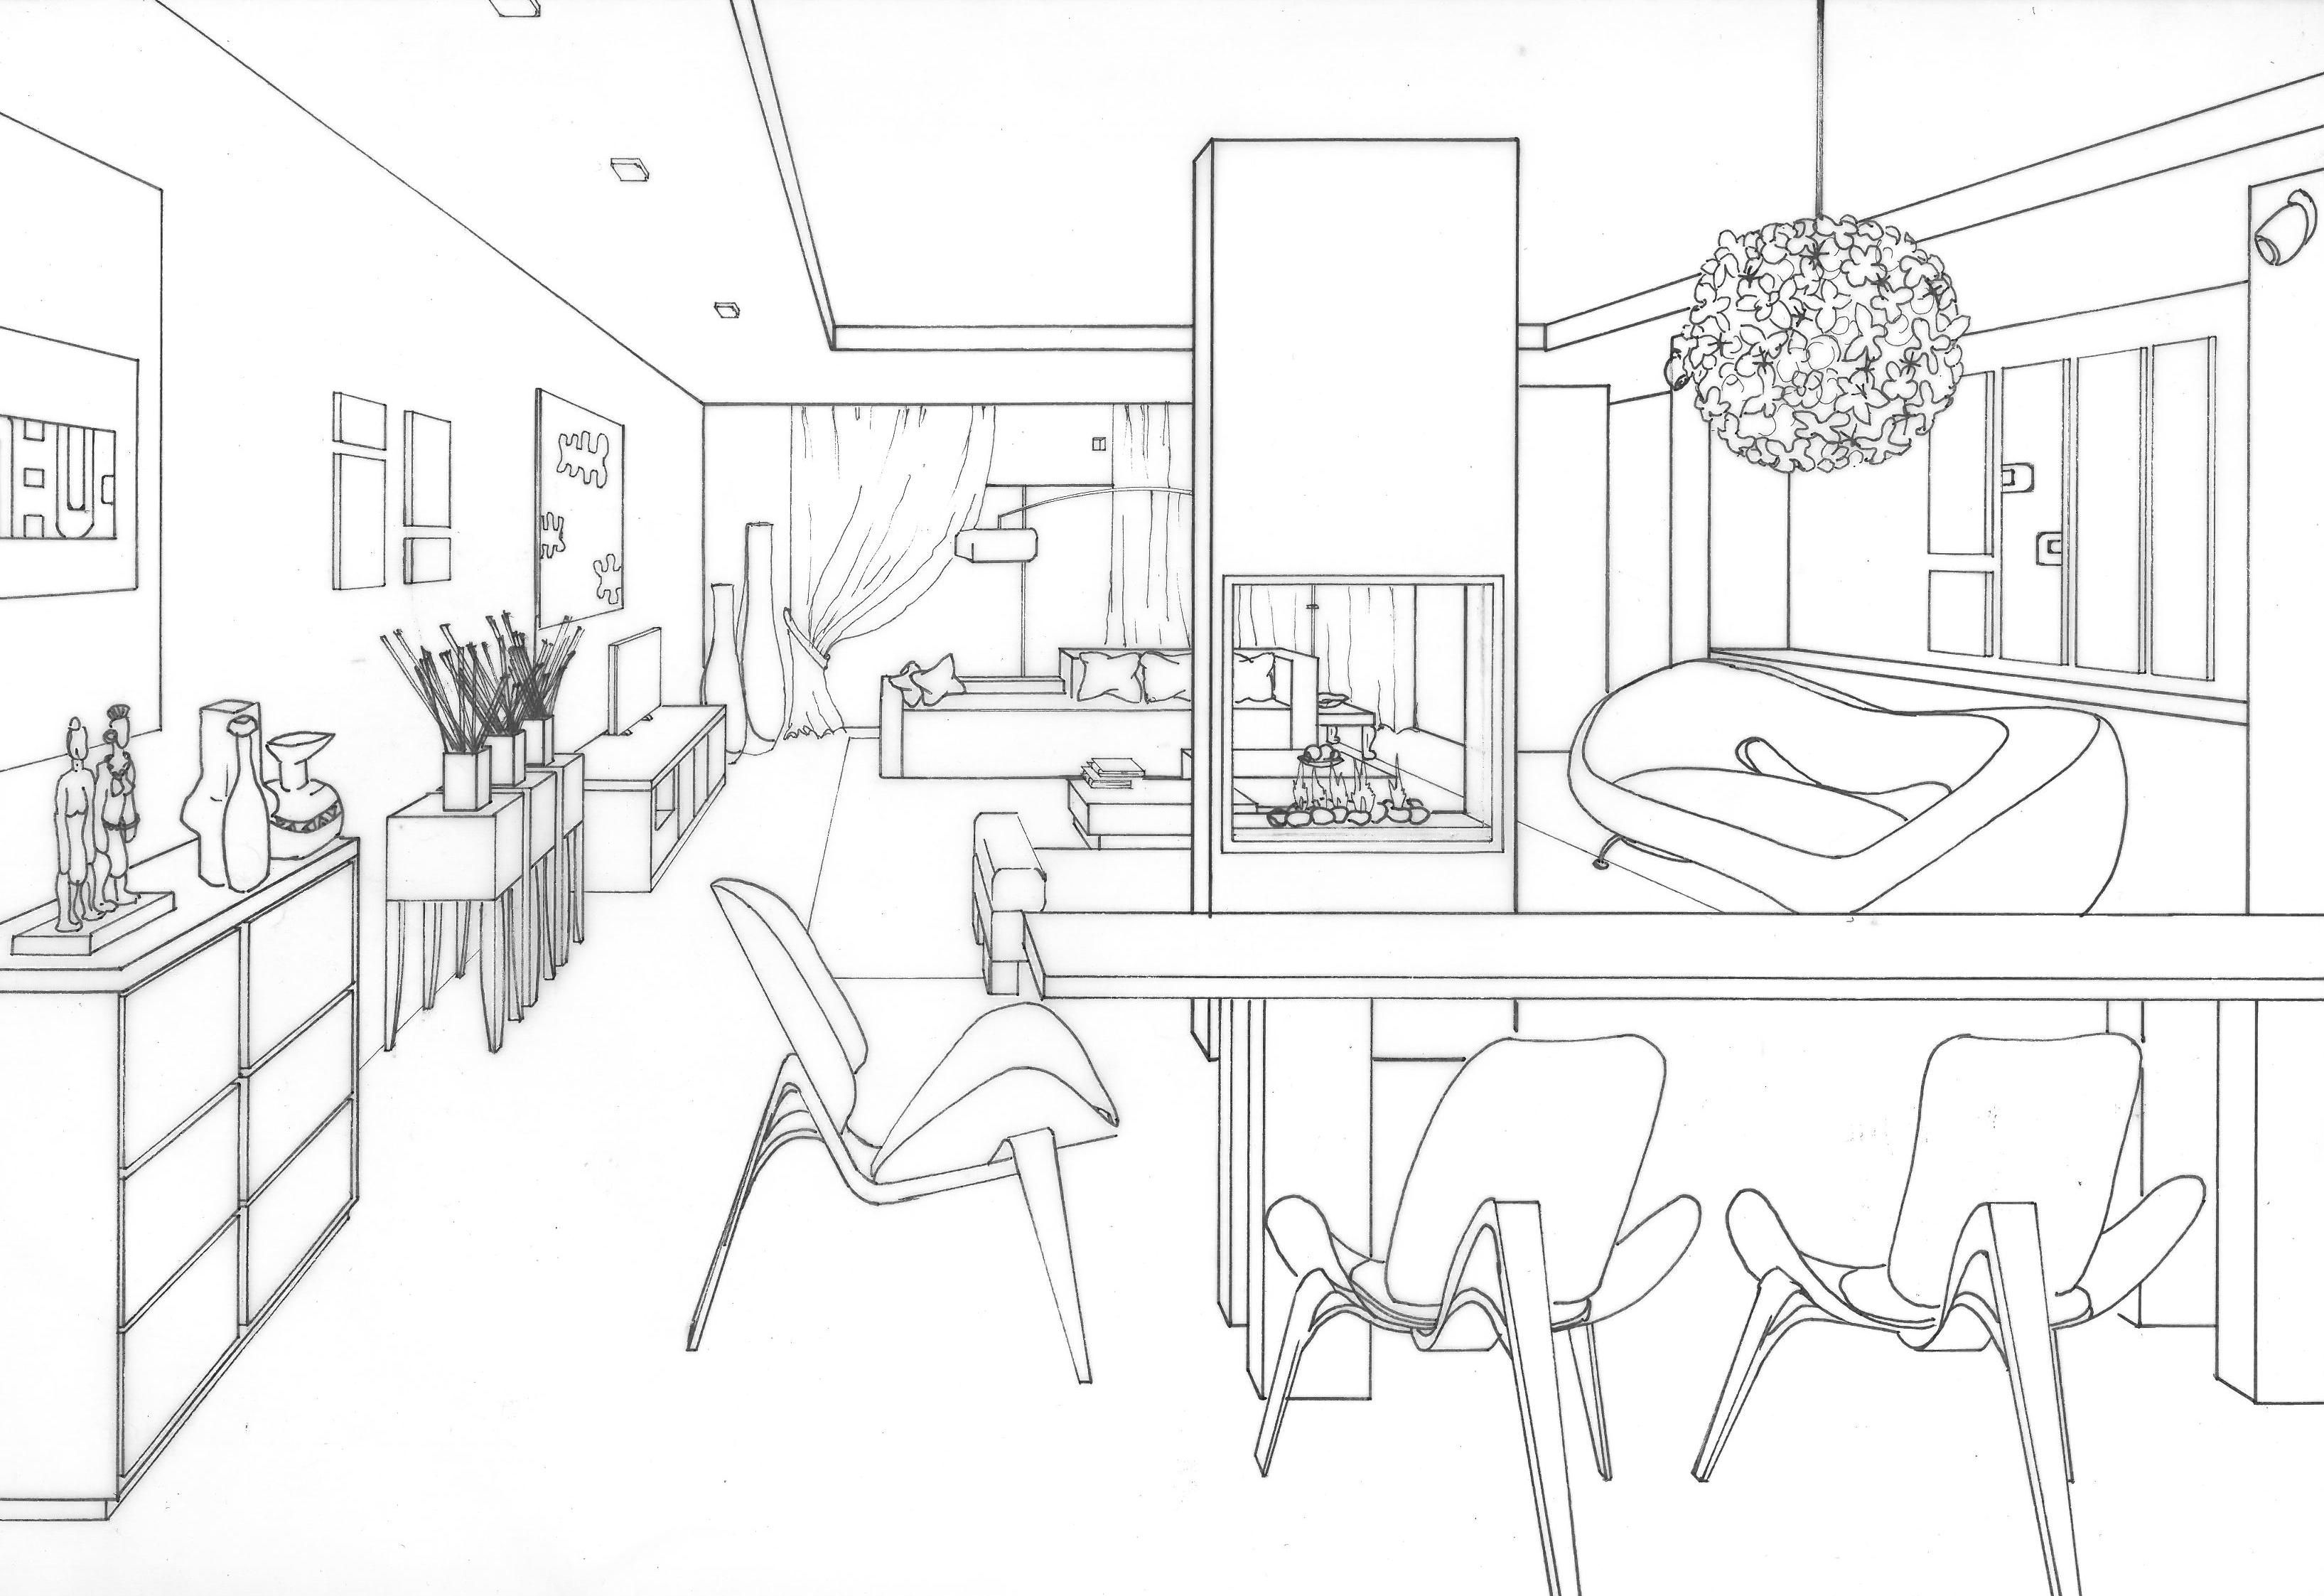 one point perspective drawings - Google Search | Interior design ...